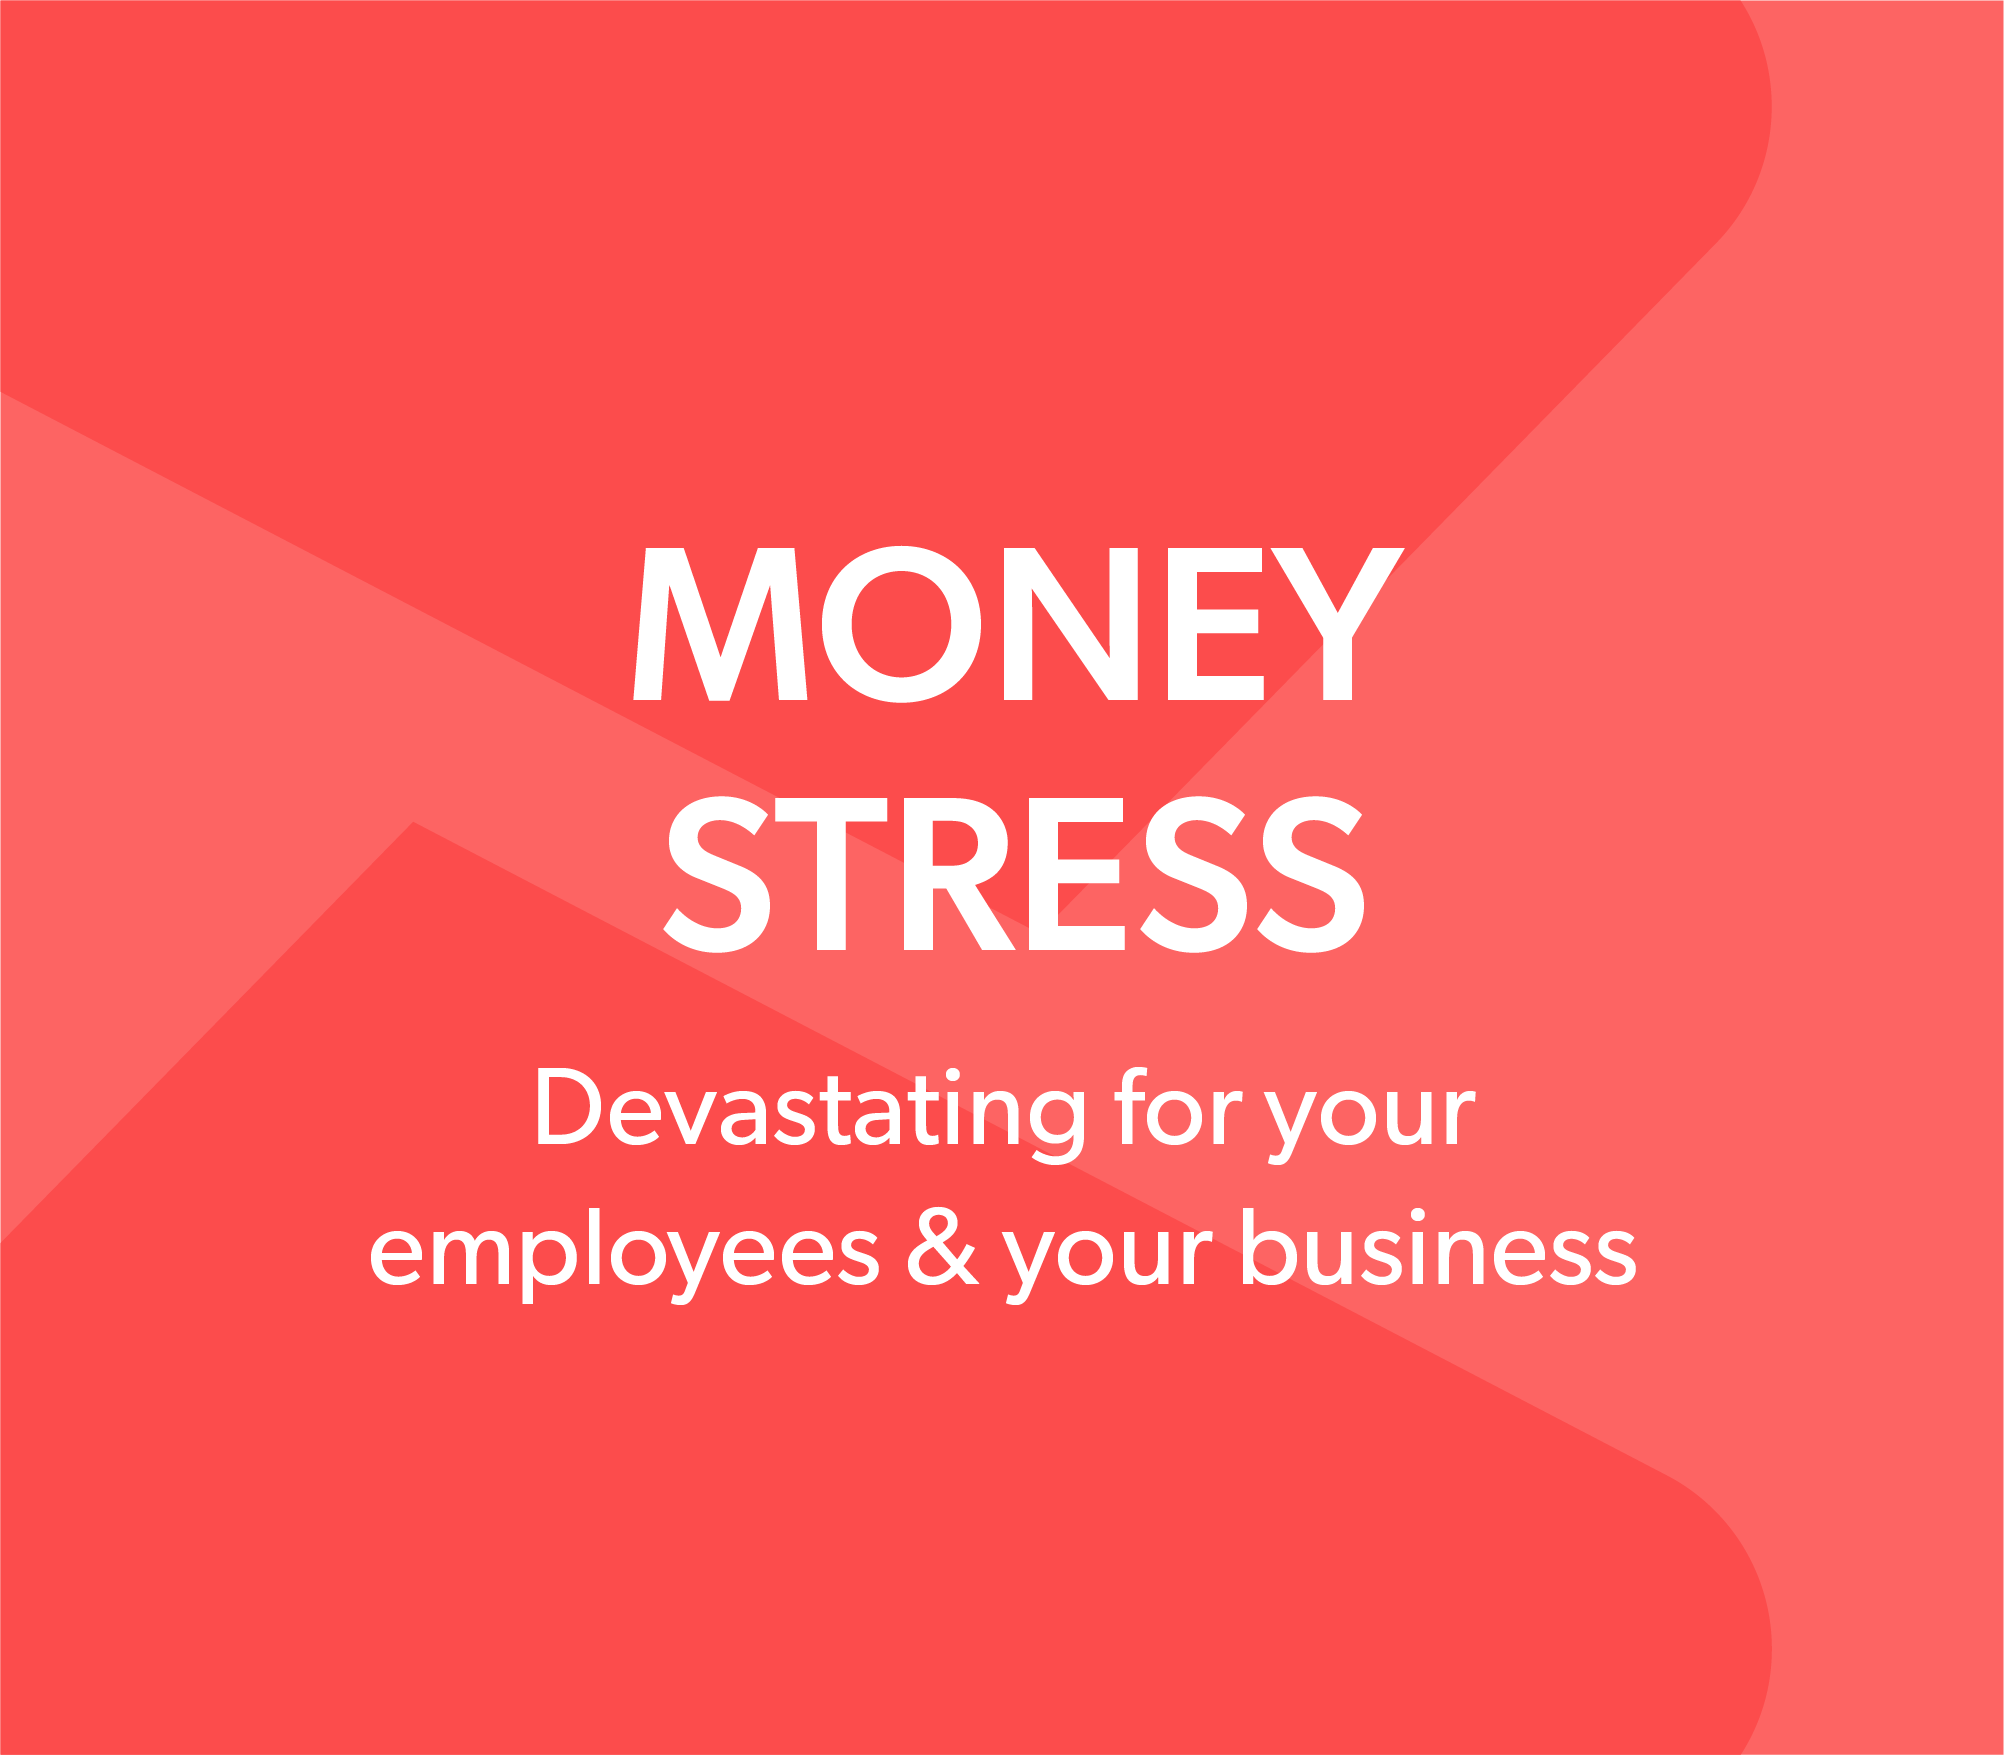 Money Stress – Devastating for your employees and business